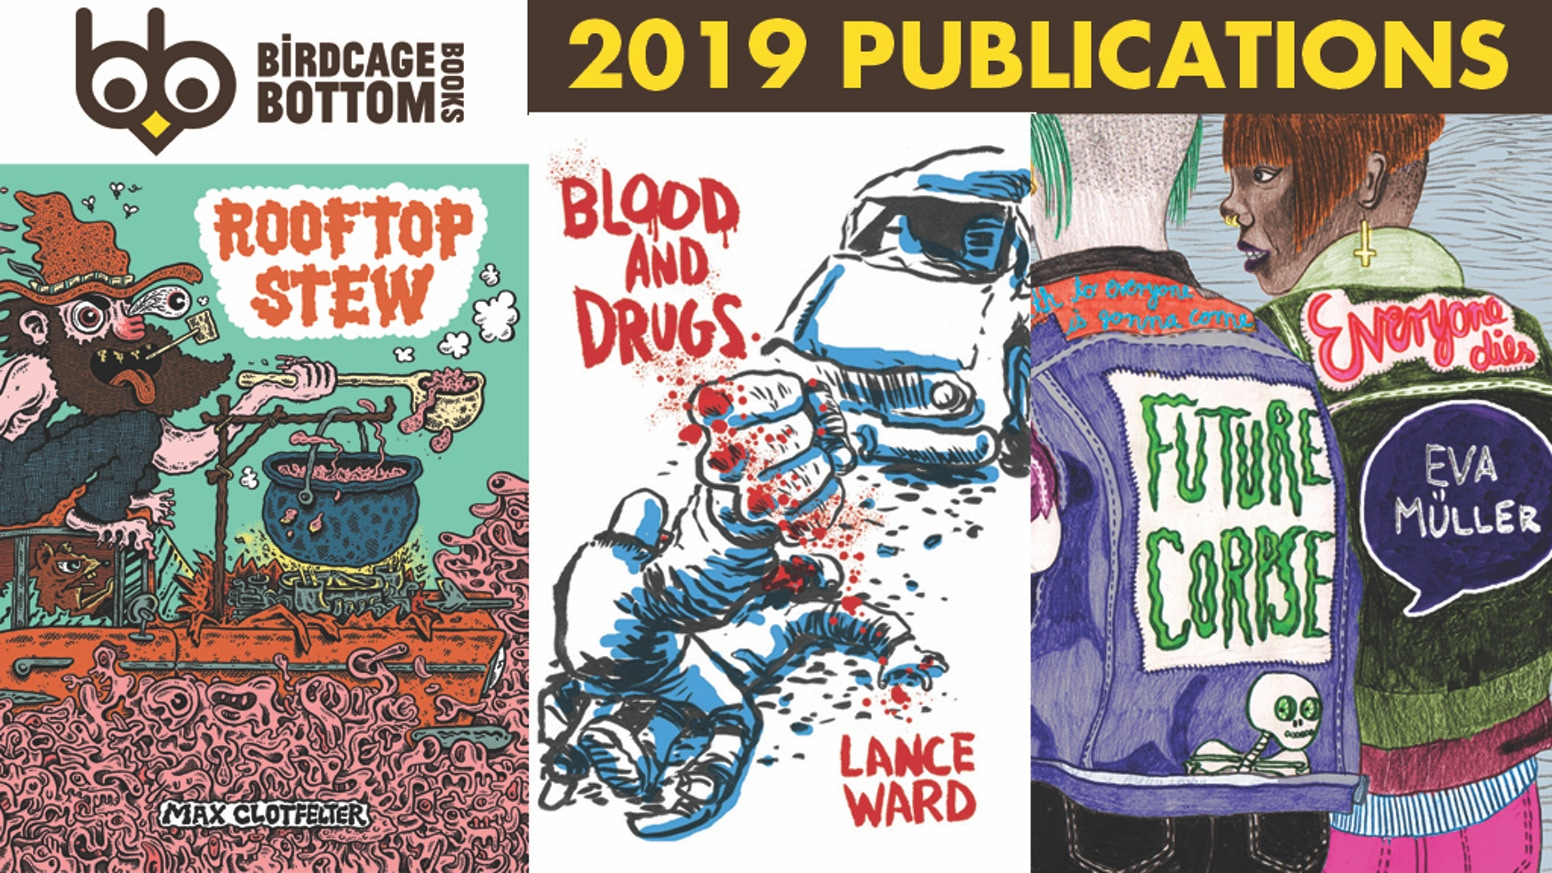 "Our 2019 publications include ""Blood and Drugs"" by Lance Ward, ""Future Corpse"" by Eva Müller, and ""Rooftop Stew"" by Max Clotfelter."